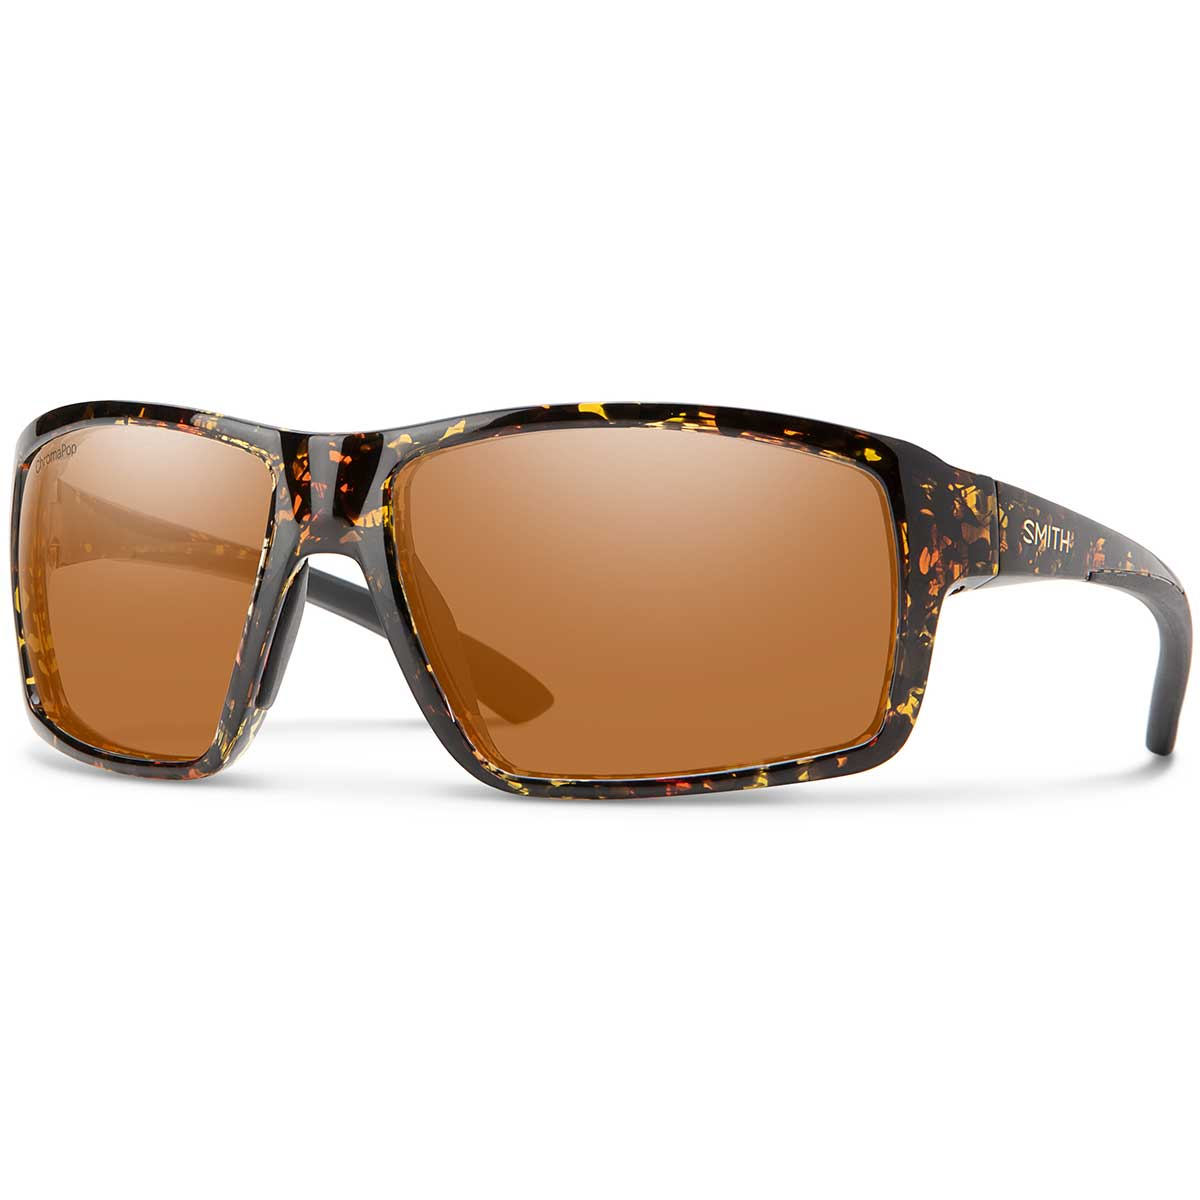 Smith Hookshot sunglasses in Dark Amber Tortoise with Copper polarized ChromaPop lenses